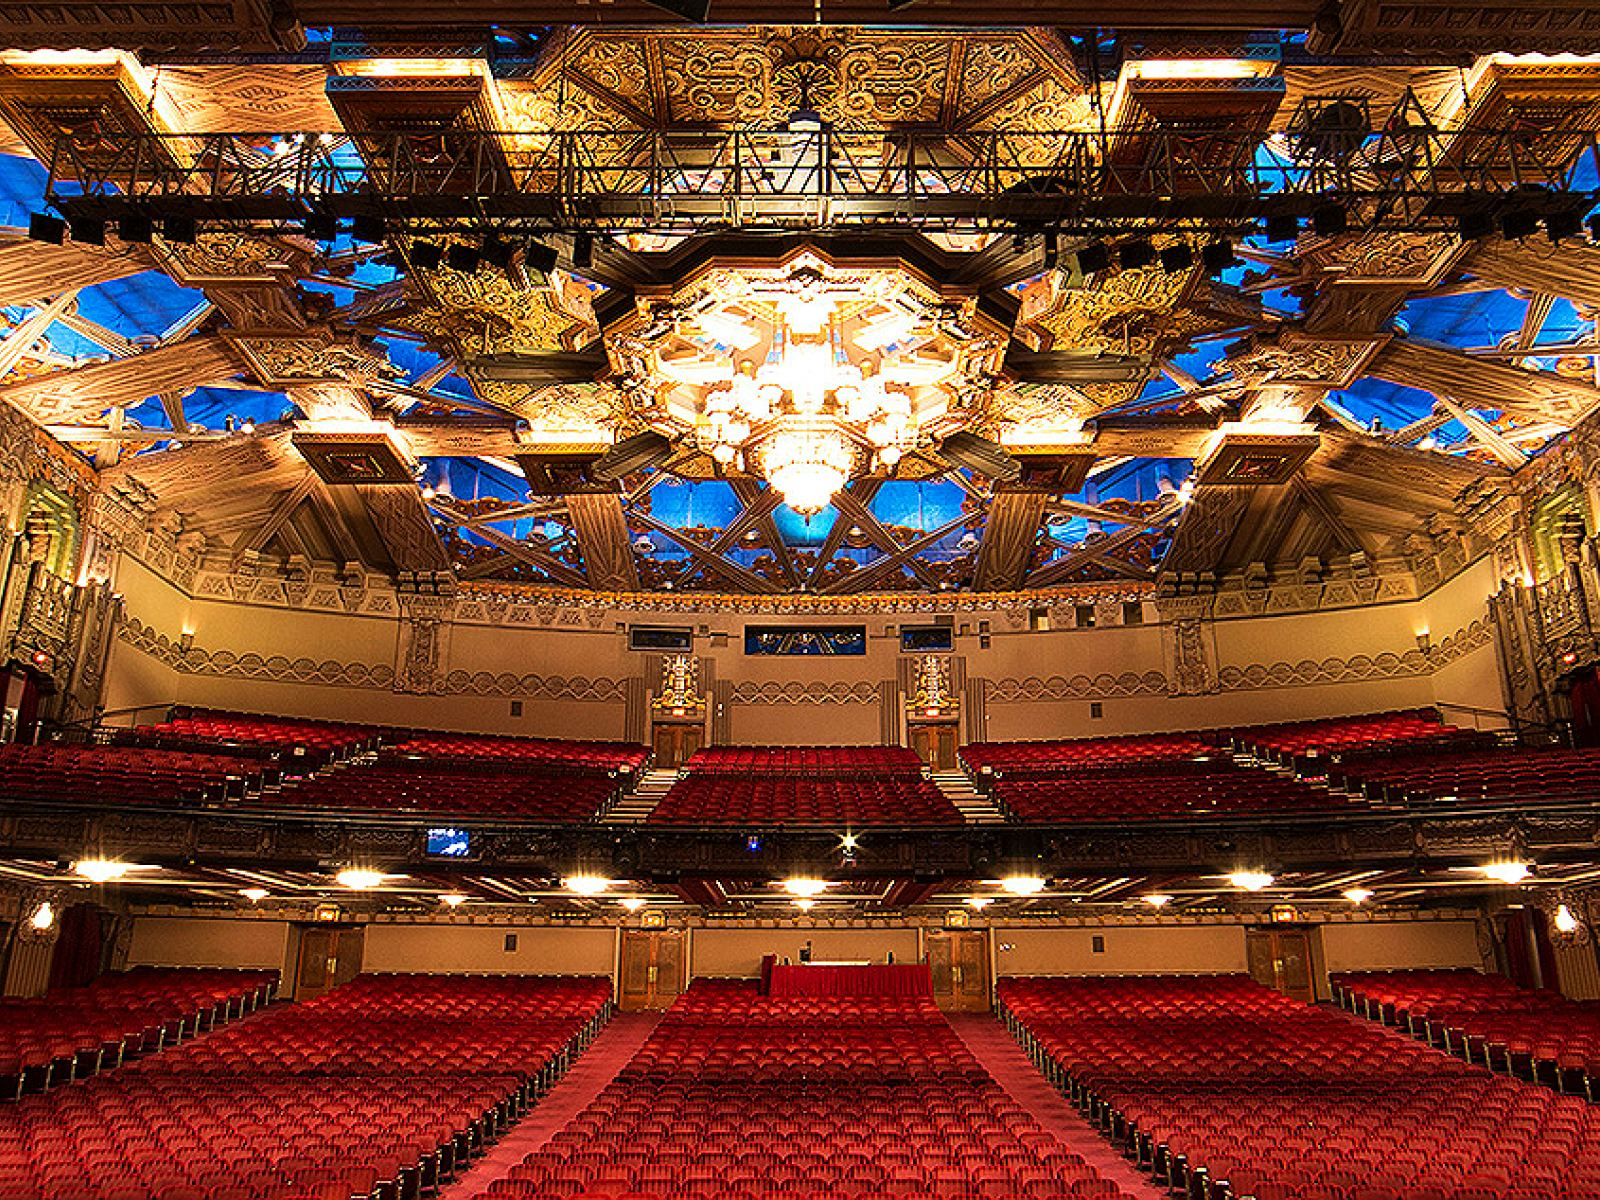 Main image for article titled Hollywood Pantages Theatre: The Story of an L.A. Icon